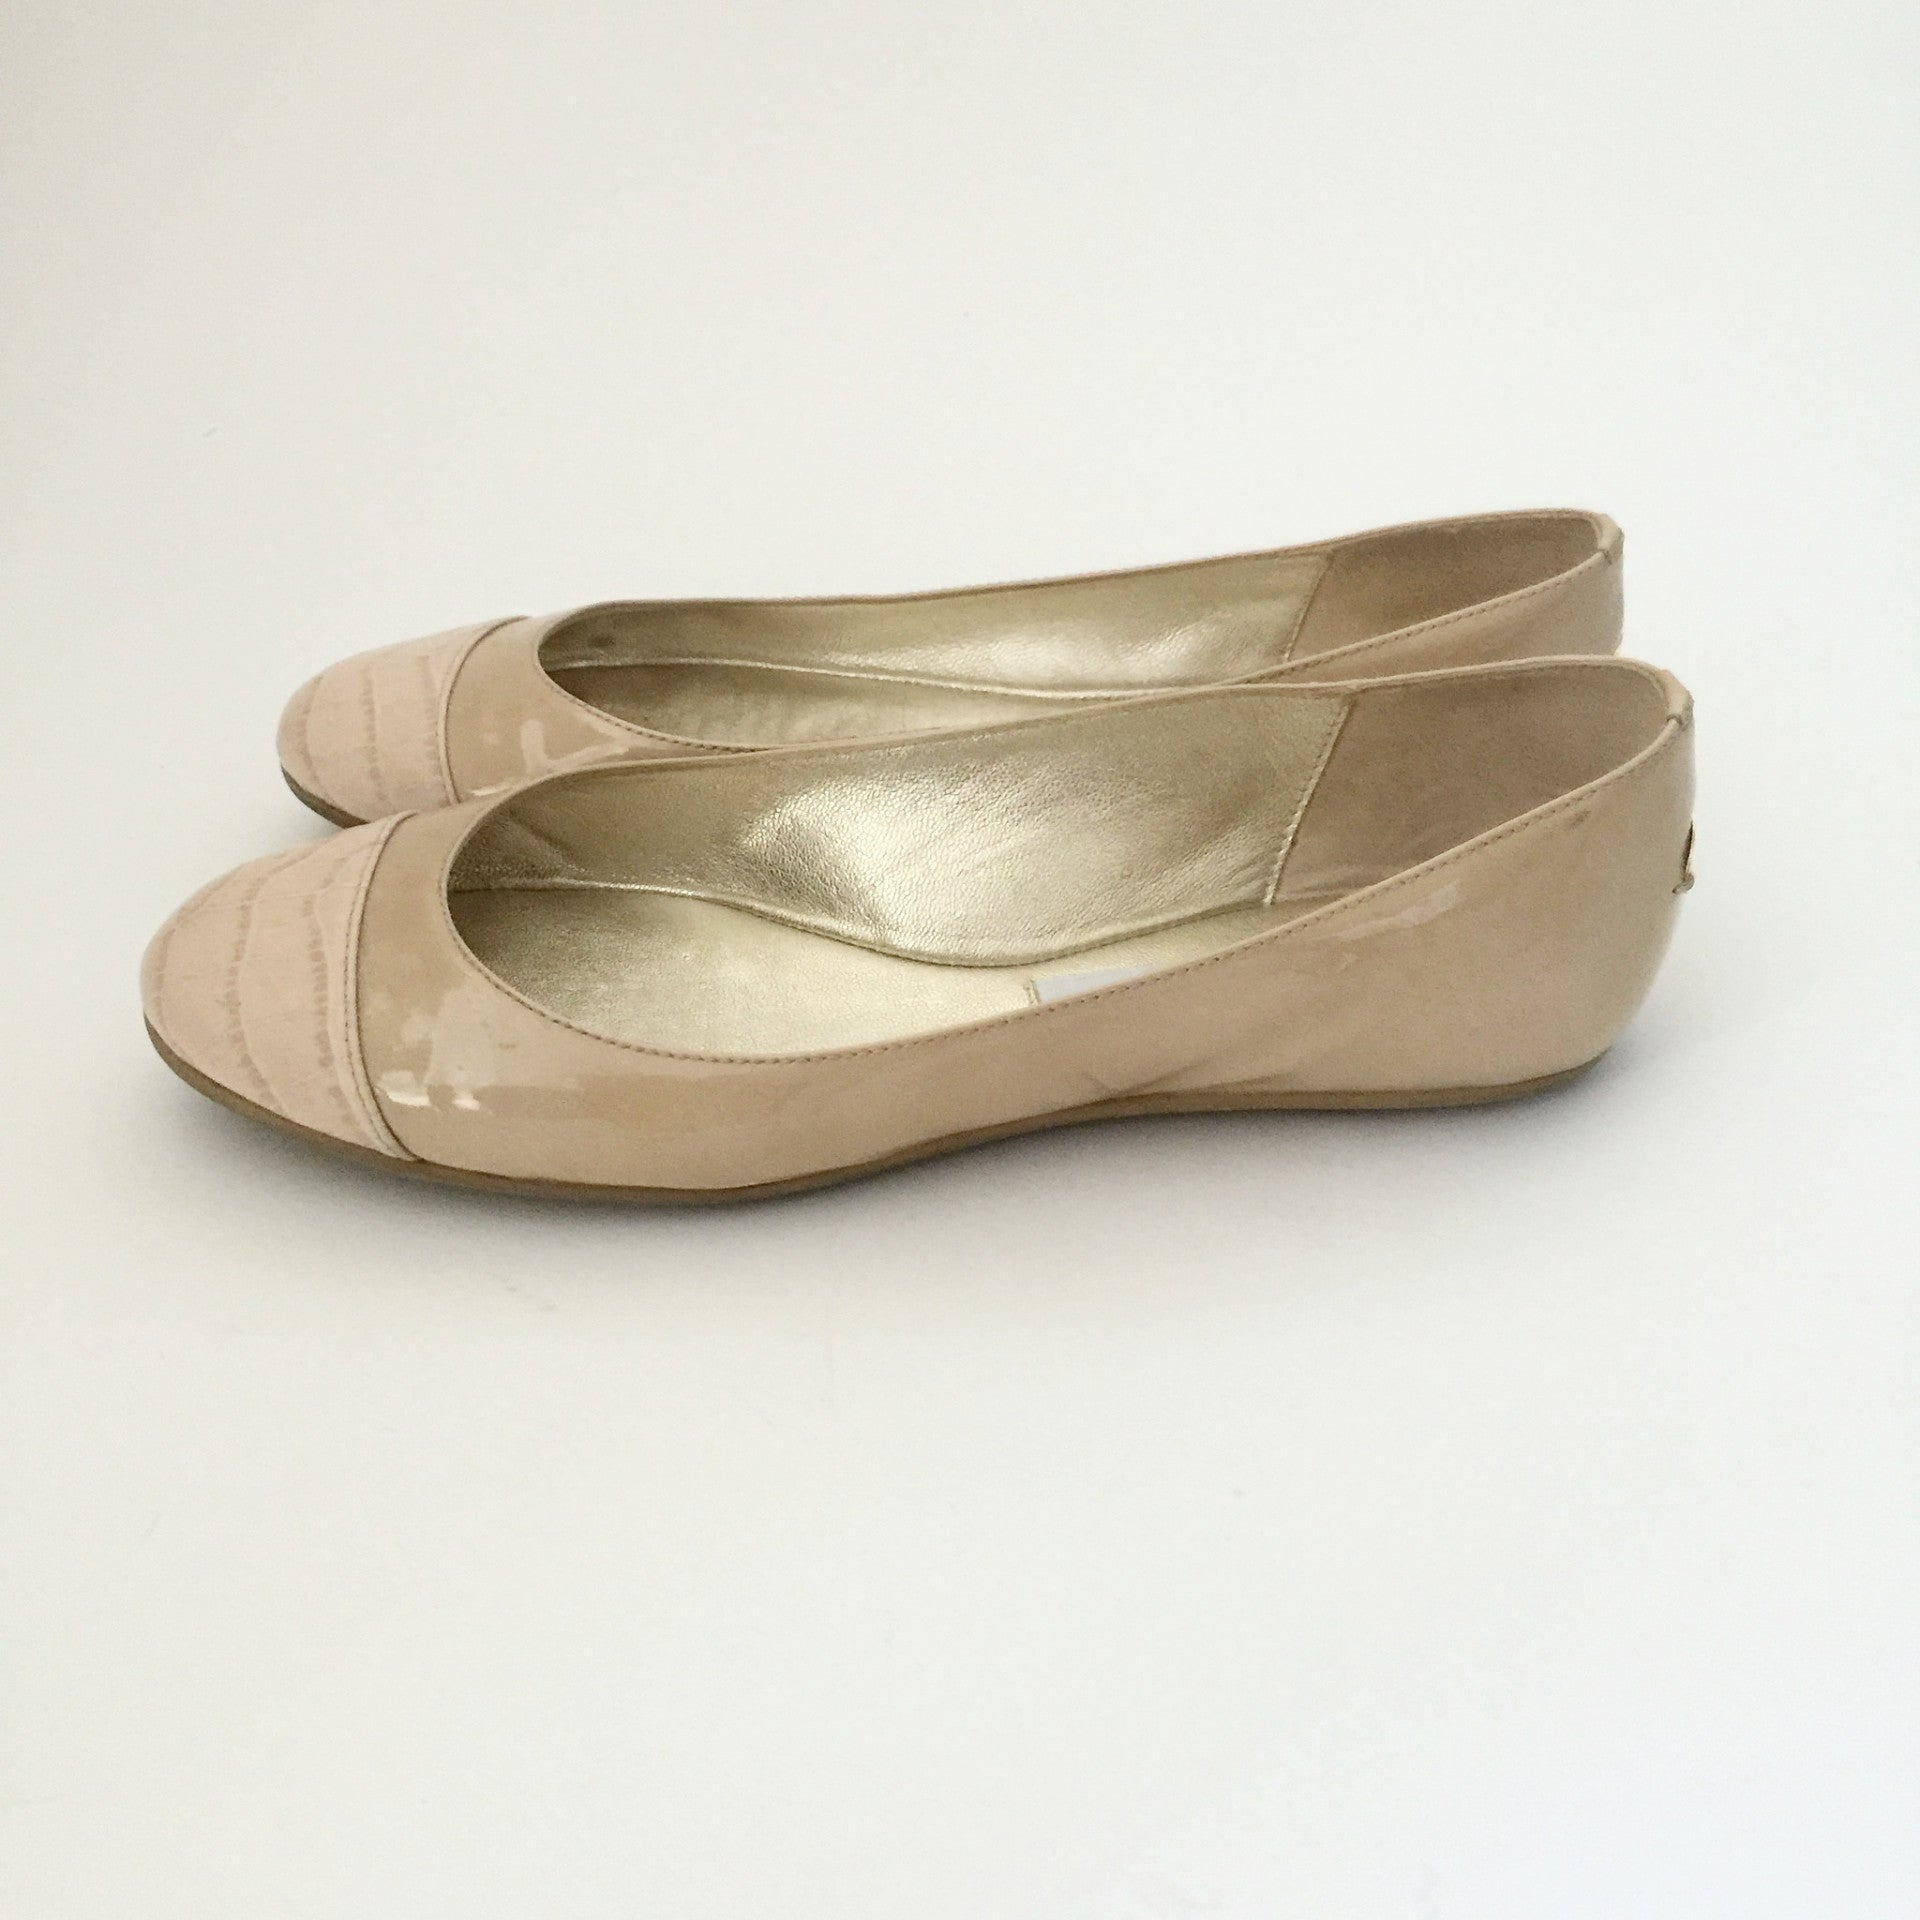 Authentic JIMMY CHOO Beige Ballet Flats Size 38 (fits like 7.5)